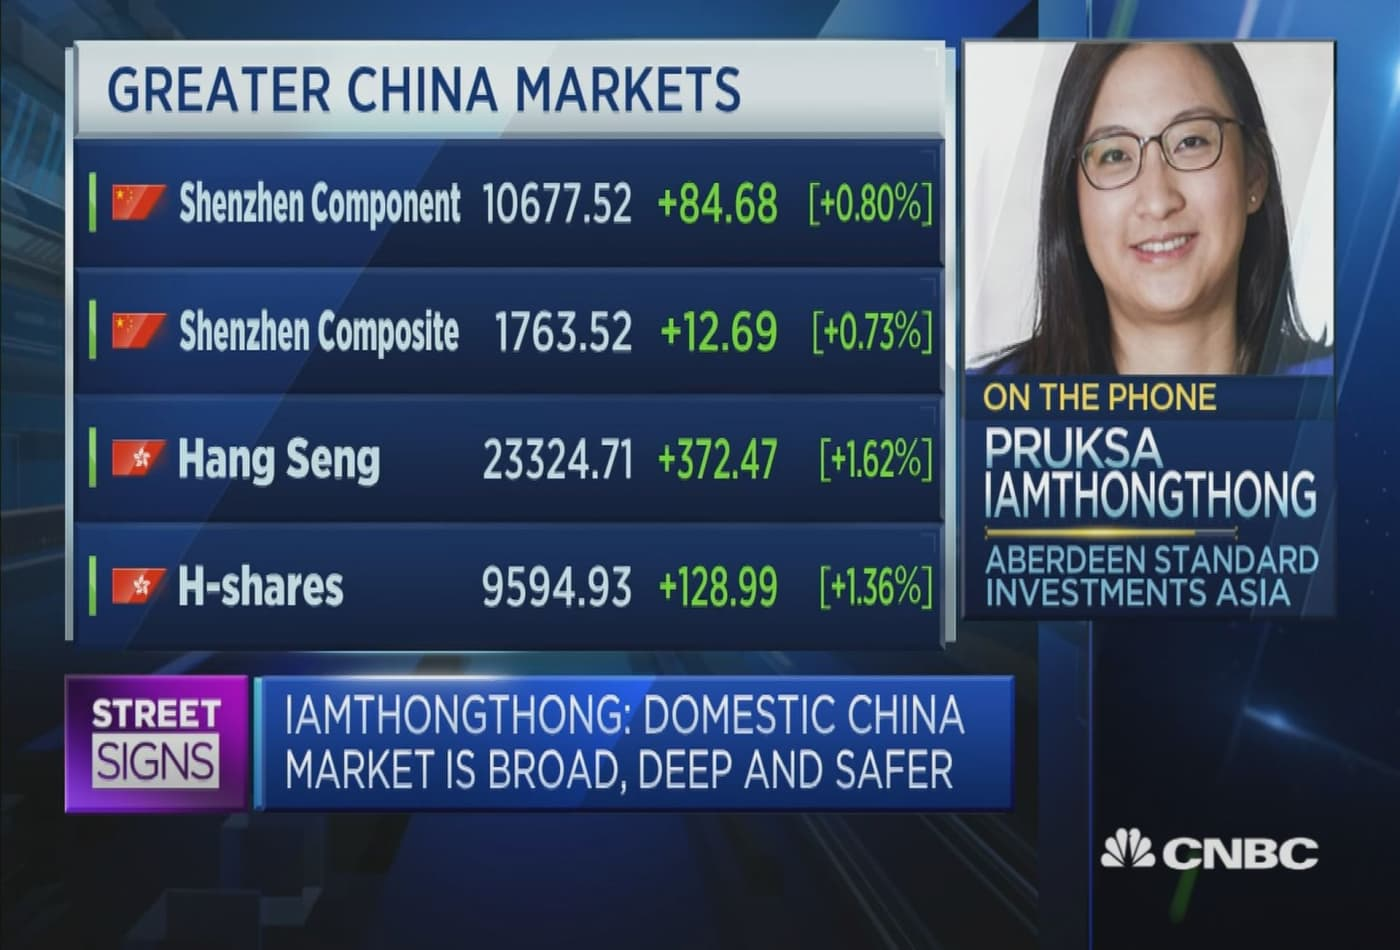 A continued fall in Hong Kong stocks will present investment opportunities: Analyst